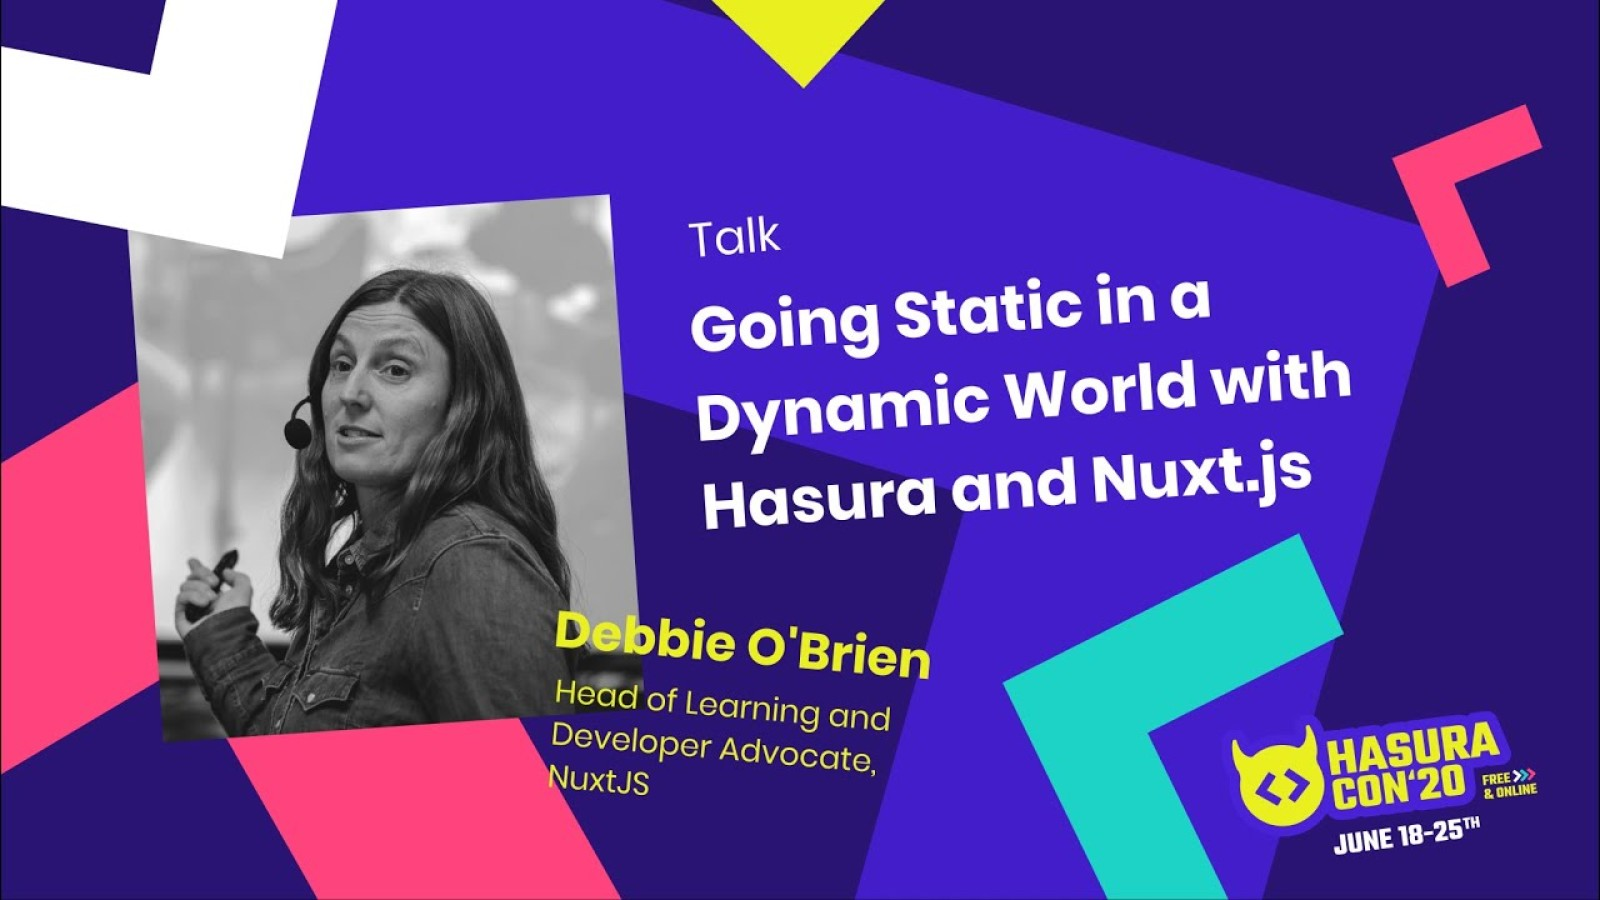 Going Static in a Dynamic World with Hasura and Nuxt.js